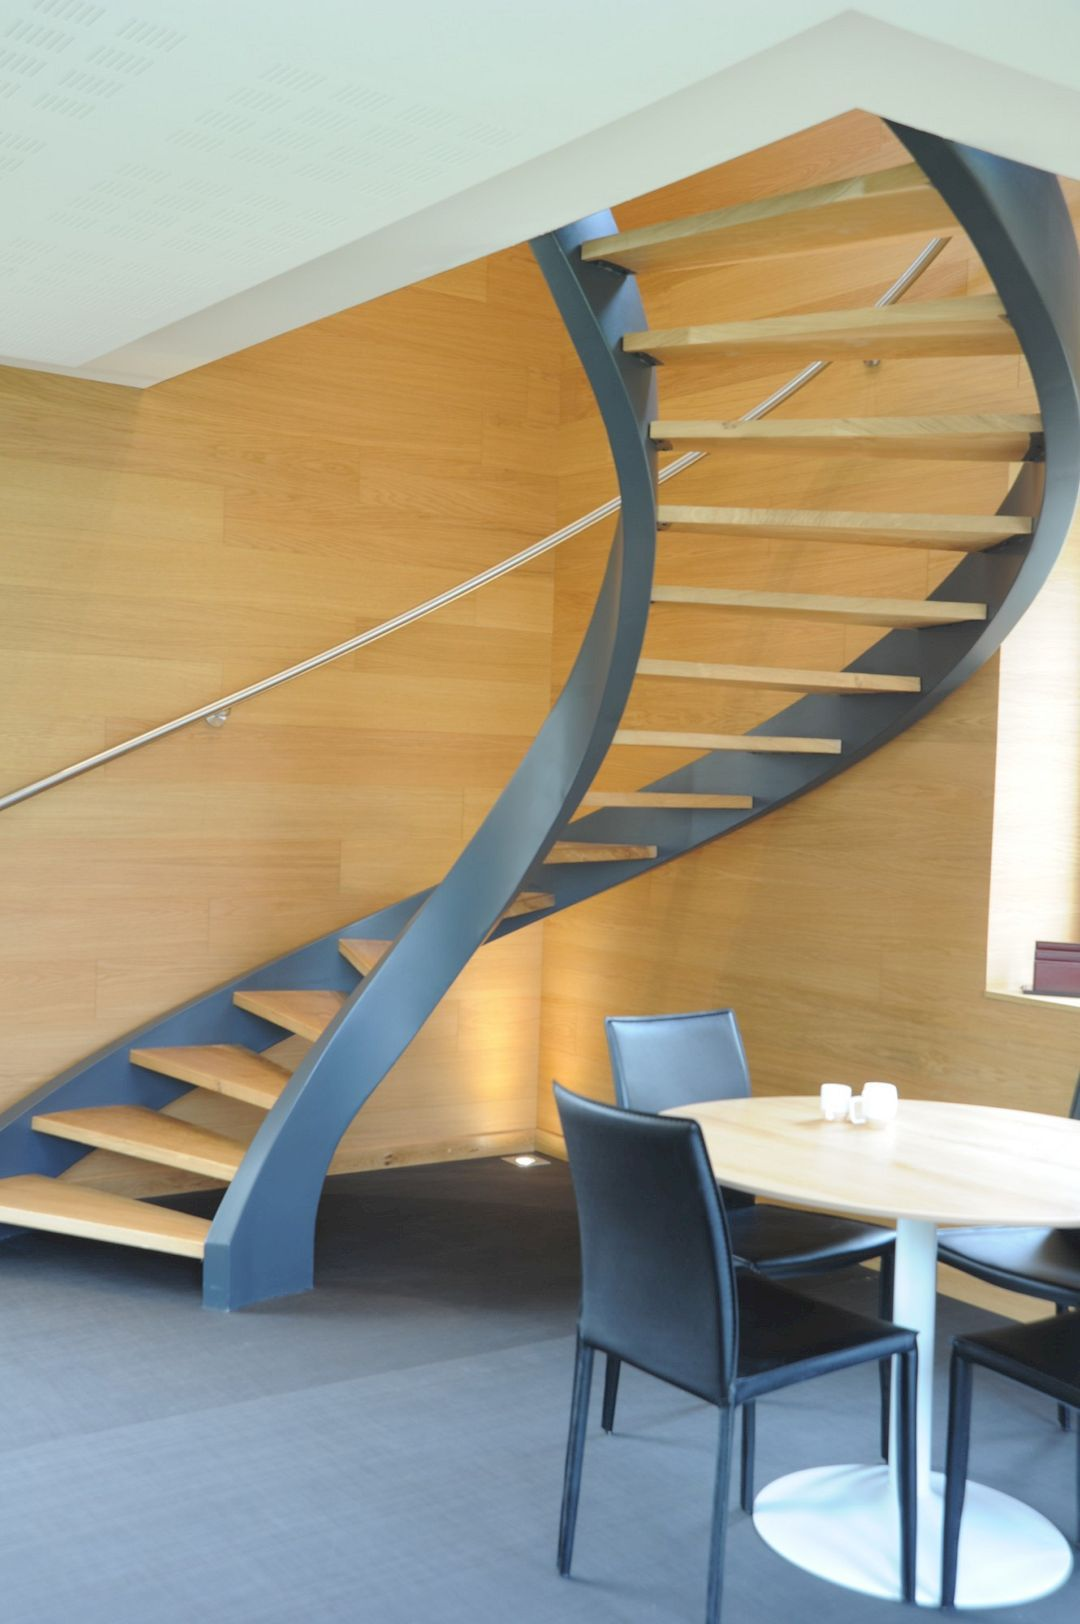 Impressive Staircase Design Inspirations | Gorgeous Interior Ideas on different table designs, different line designs, different types of design, different painting designs, different office designs, front porch steps with railings designs, different chair designs, different building designs, different interior designs, different window designs, different square designs, different carpet designs, different store designs, beautiful house plans designs, different book designs, different star designs, different fence designs, different furniture designs, different walkway designs, different bathroom designs,